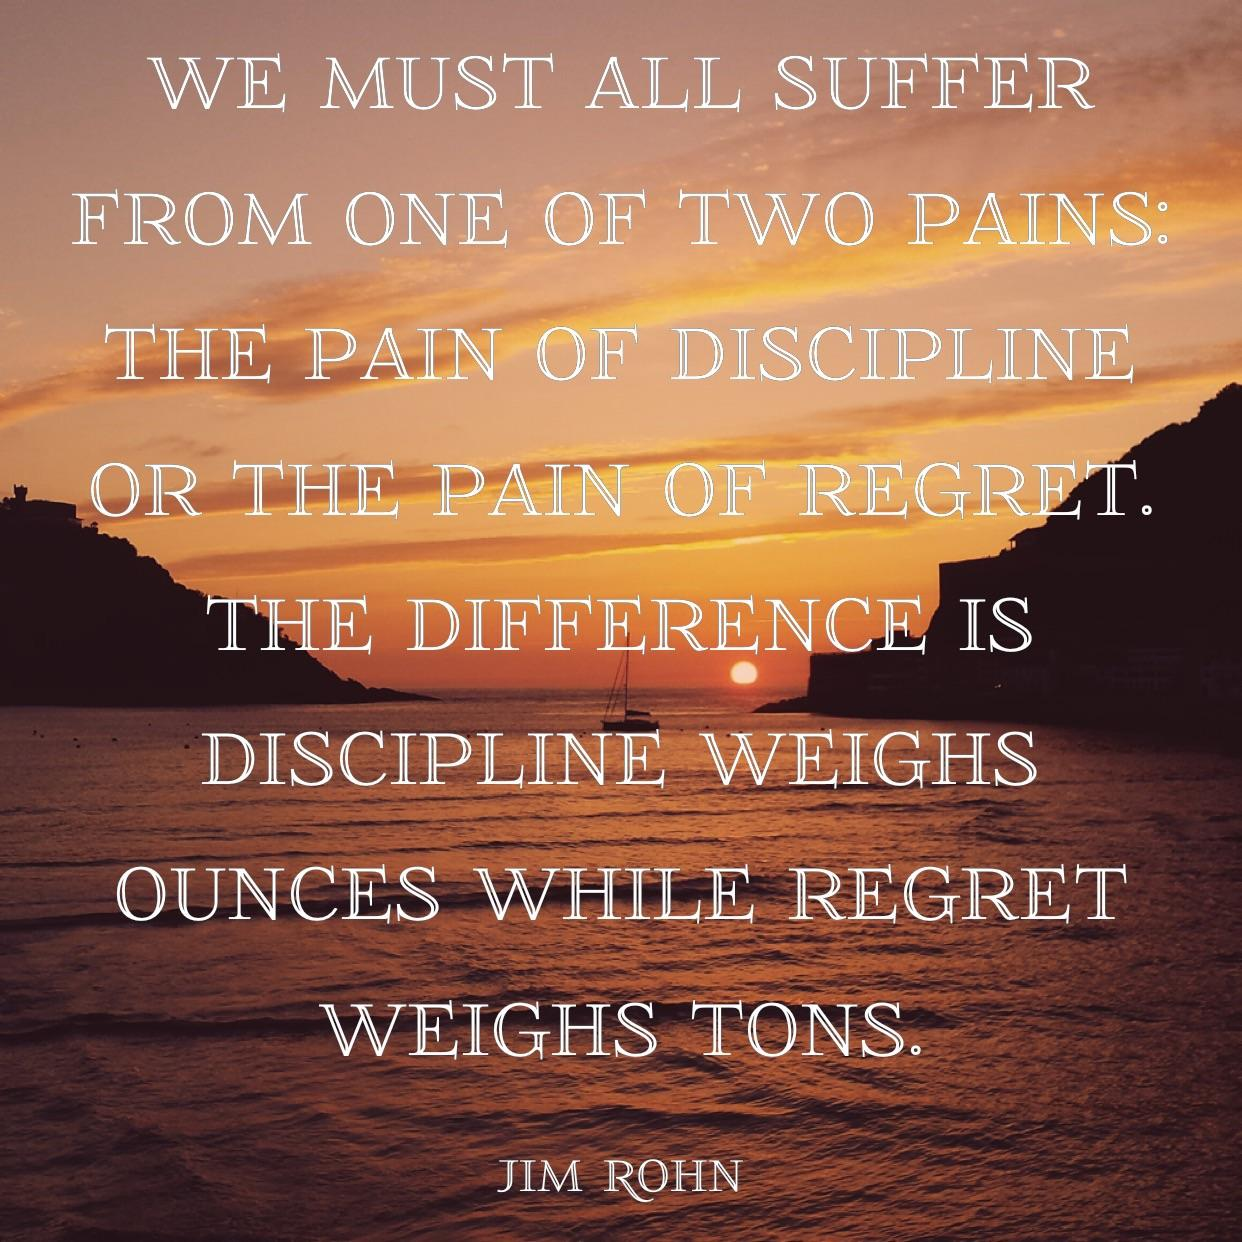 """We must all suffer from one of two pains…"" -Jim Rohn [OC] [1242 x 1242]"